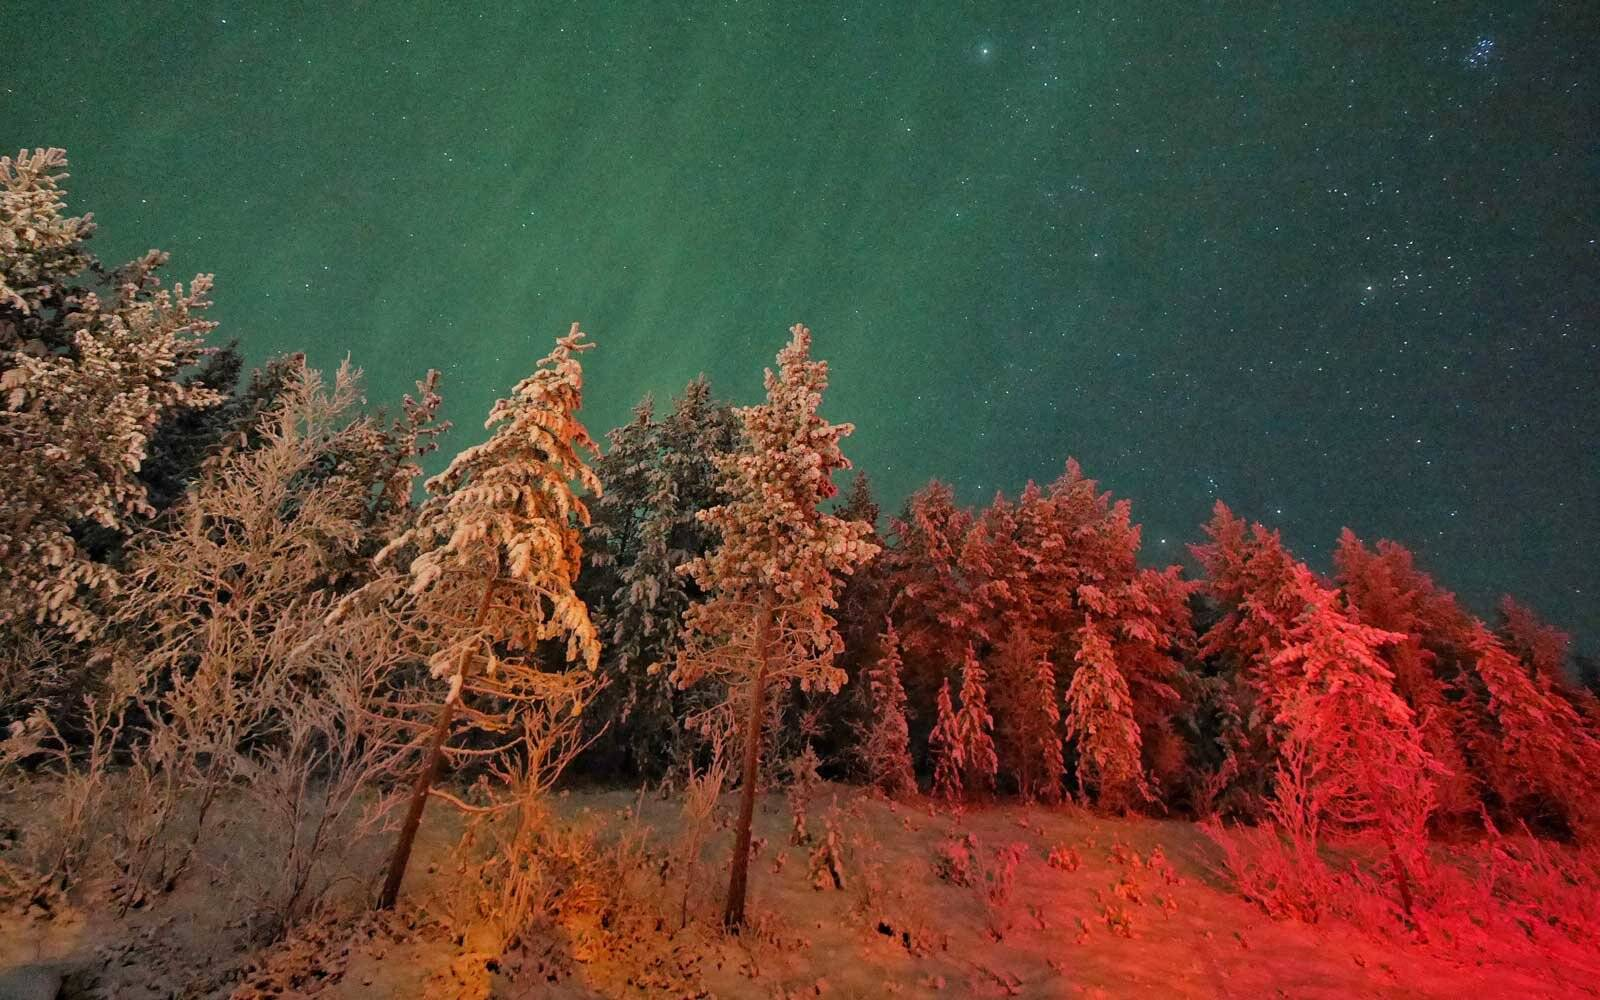 Northern lights glowing over a forest in Murmansk, Russia